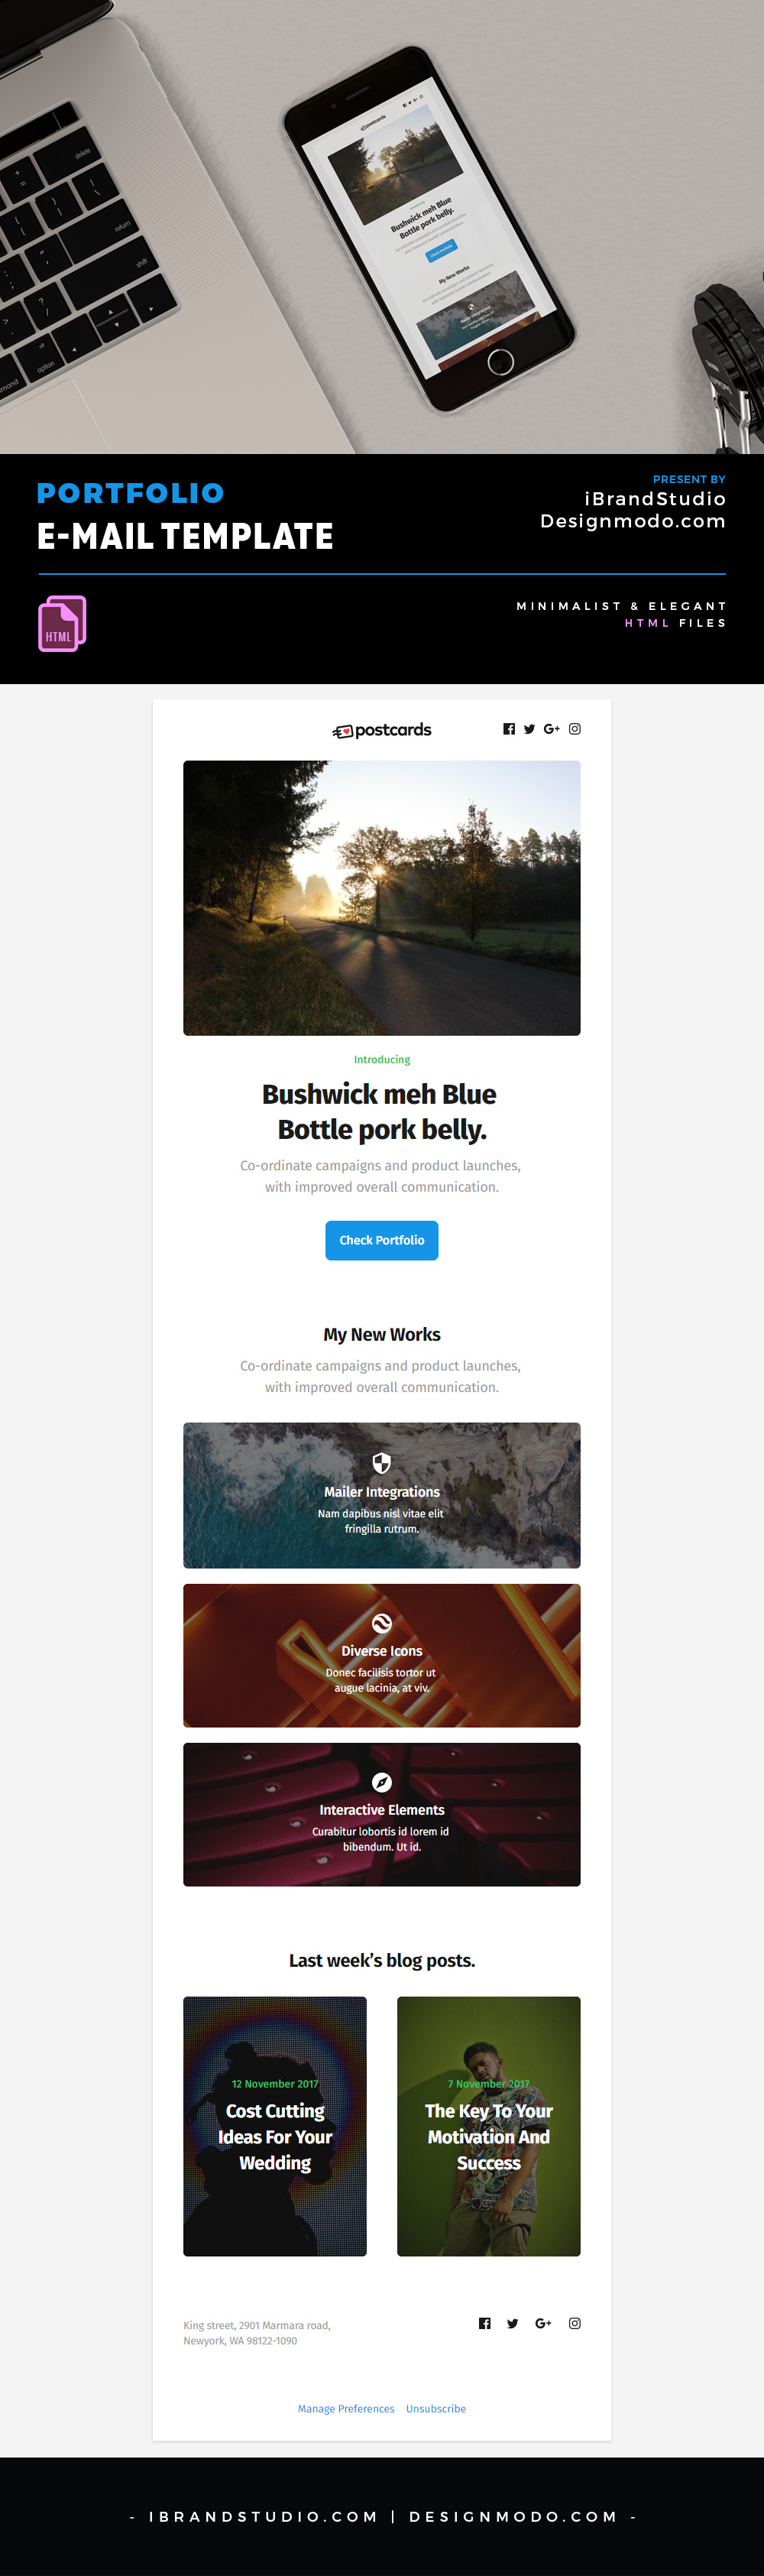 Free Email Template - HTML Portfolio Newsletter